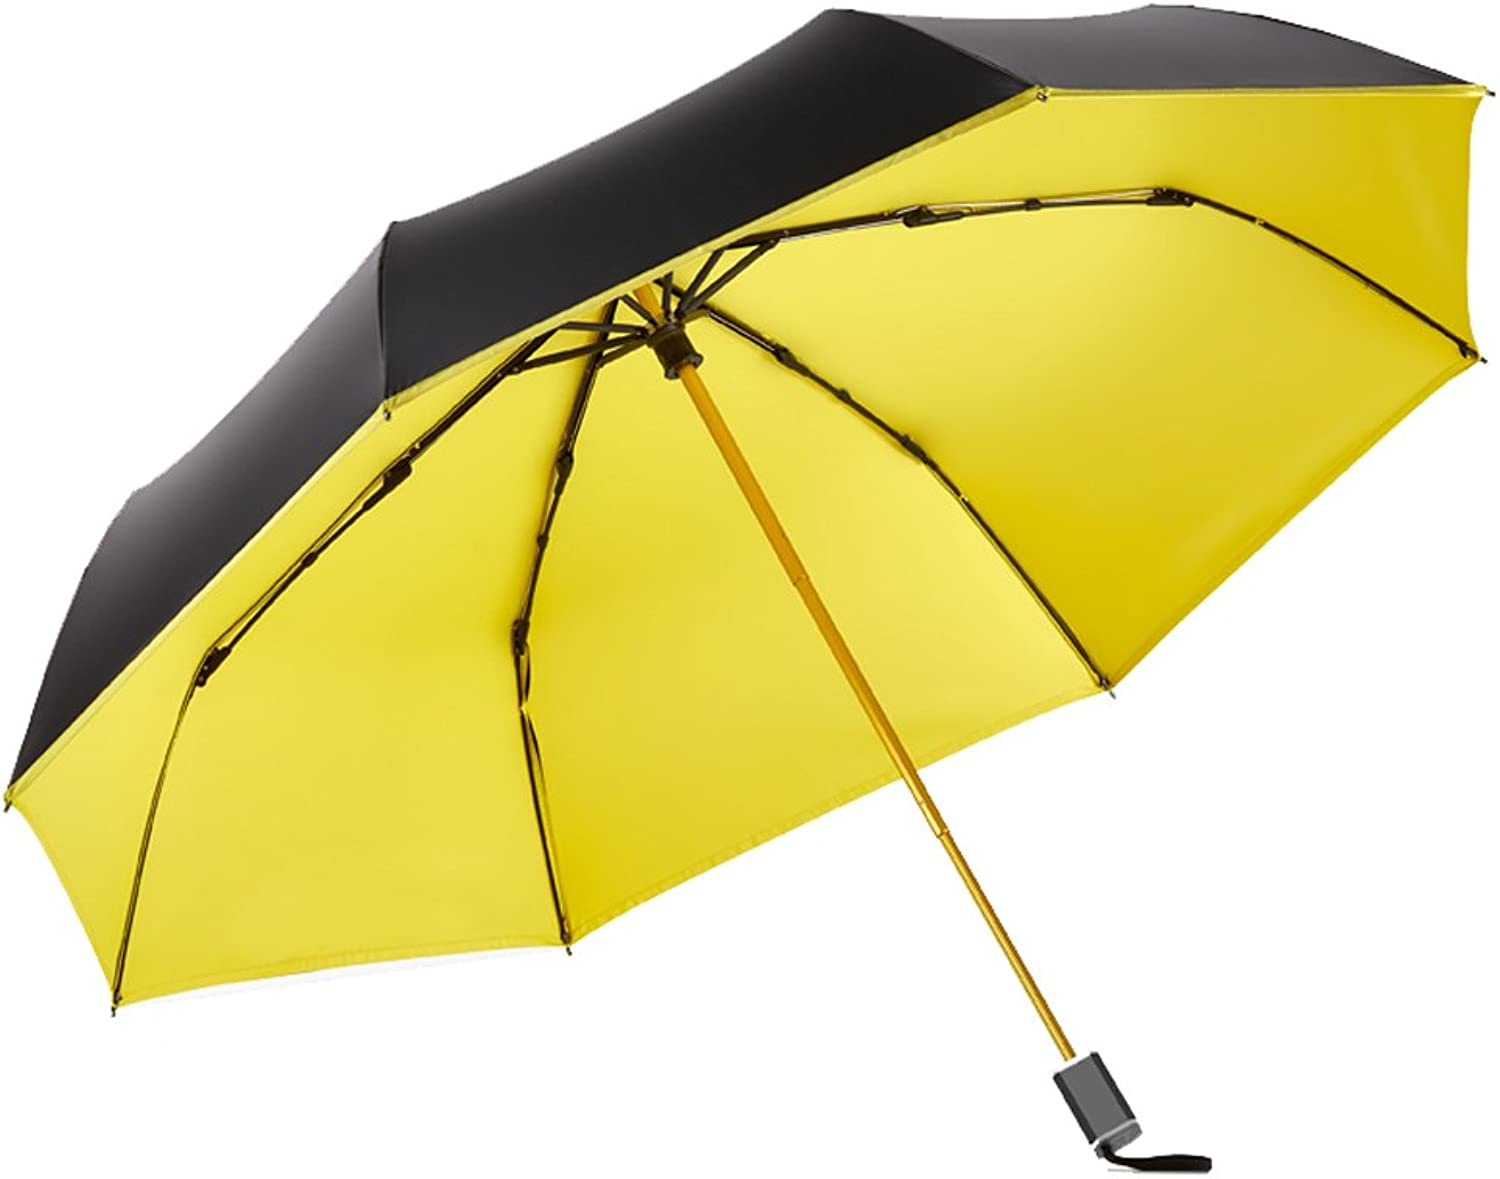 Compact Travel Umbrella, Portable Foldable Lightweight Design and High Wind Resistance, UV Predection Waterproof Quick Drying